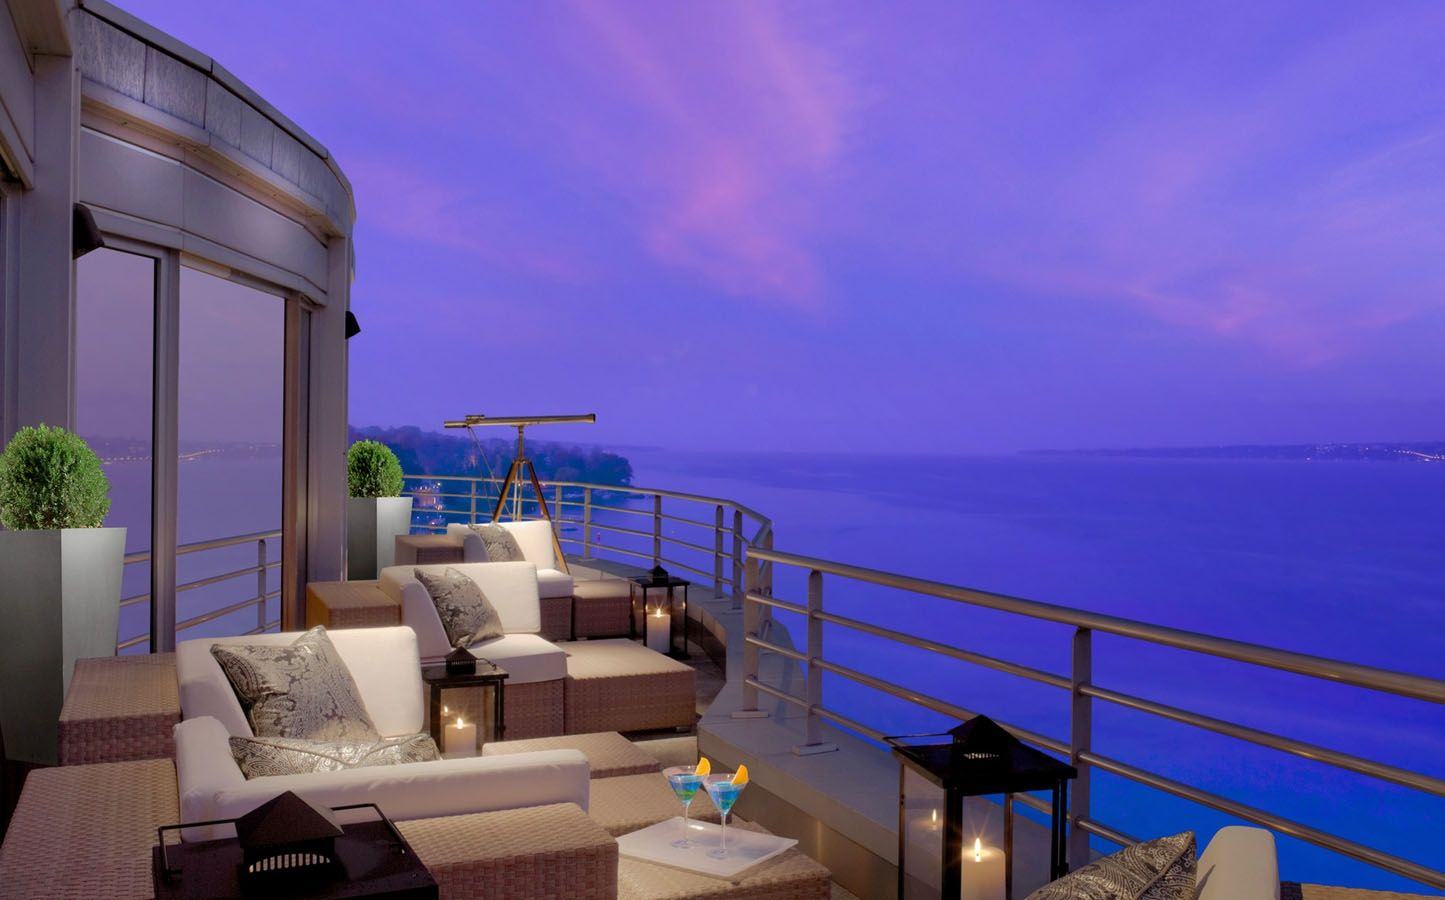 The most expensive hotels in the world worldation for Most stylish hotels in the world